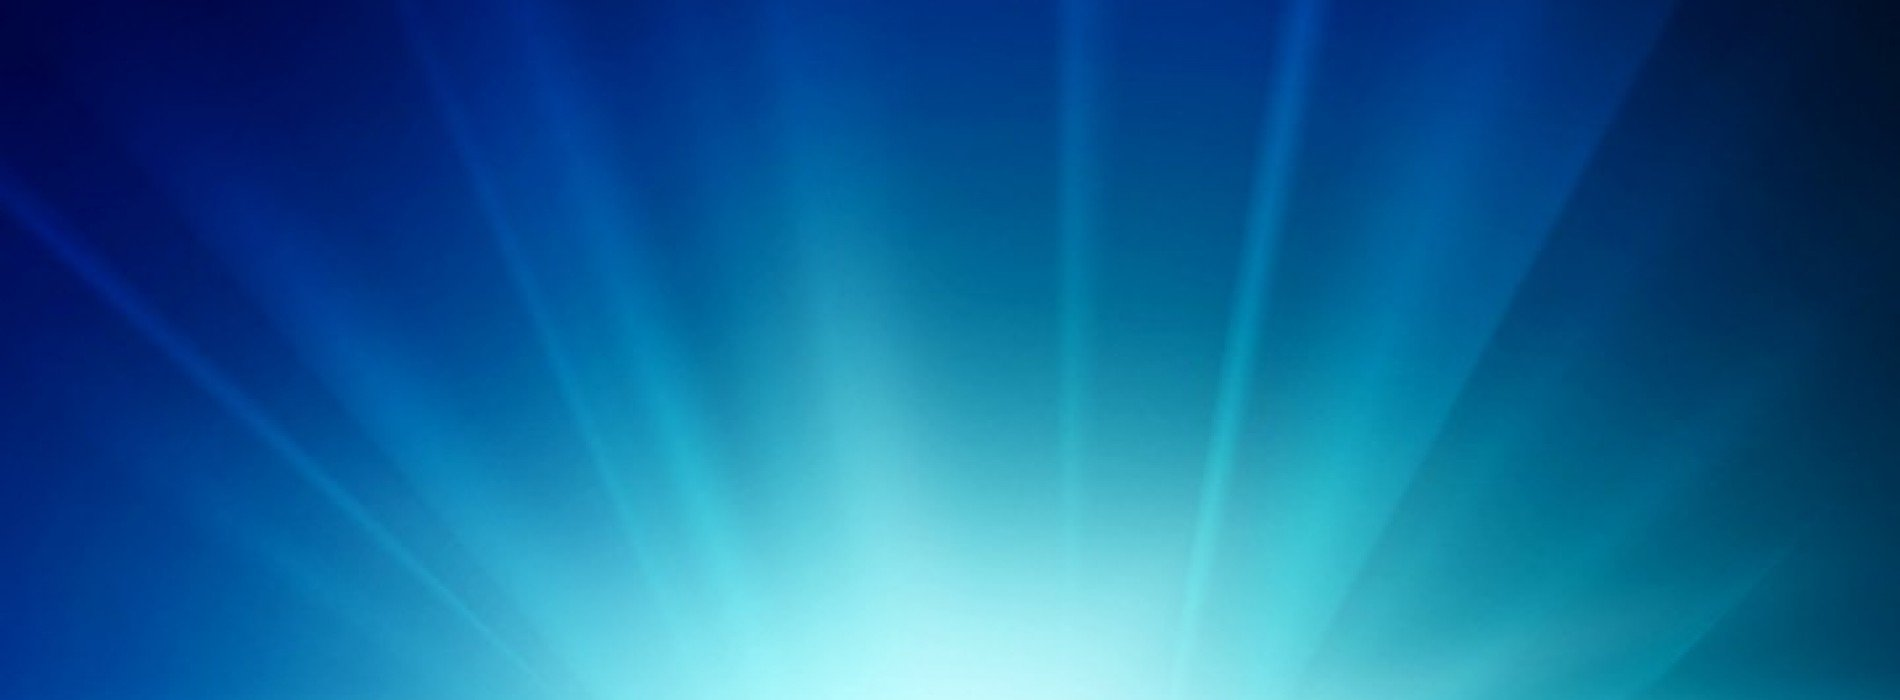 "Weekend wallpapers: 24 ""Blue"" backgrounds for your Android"